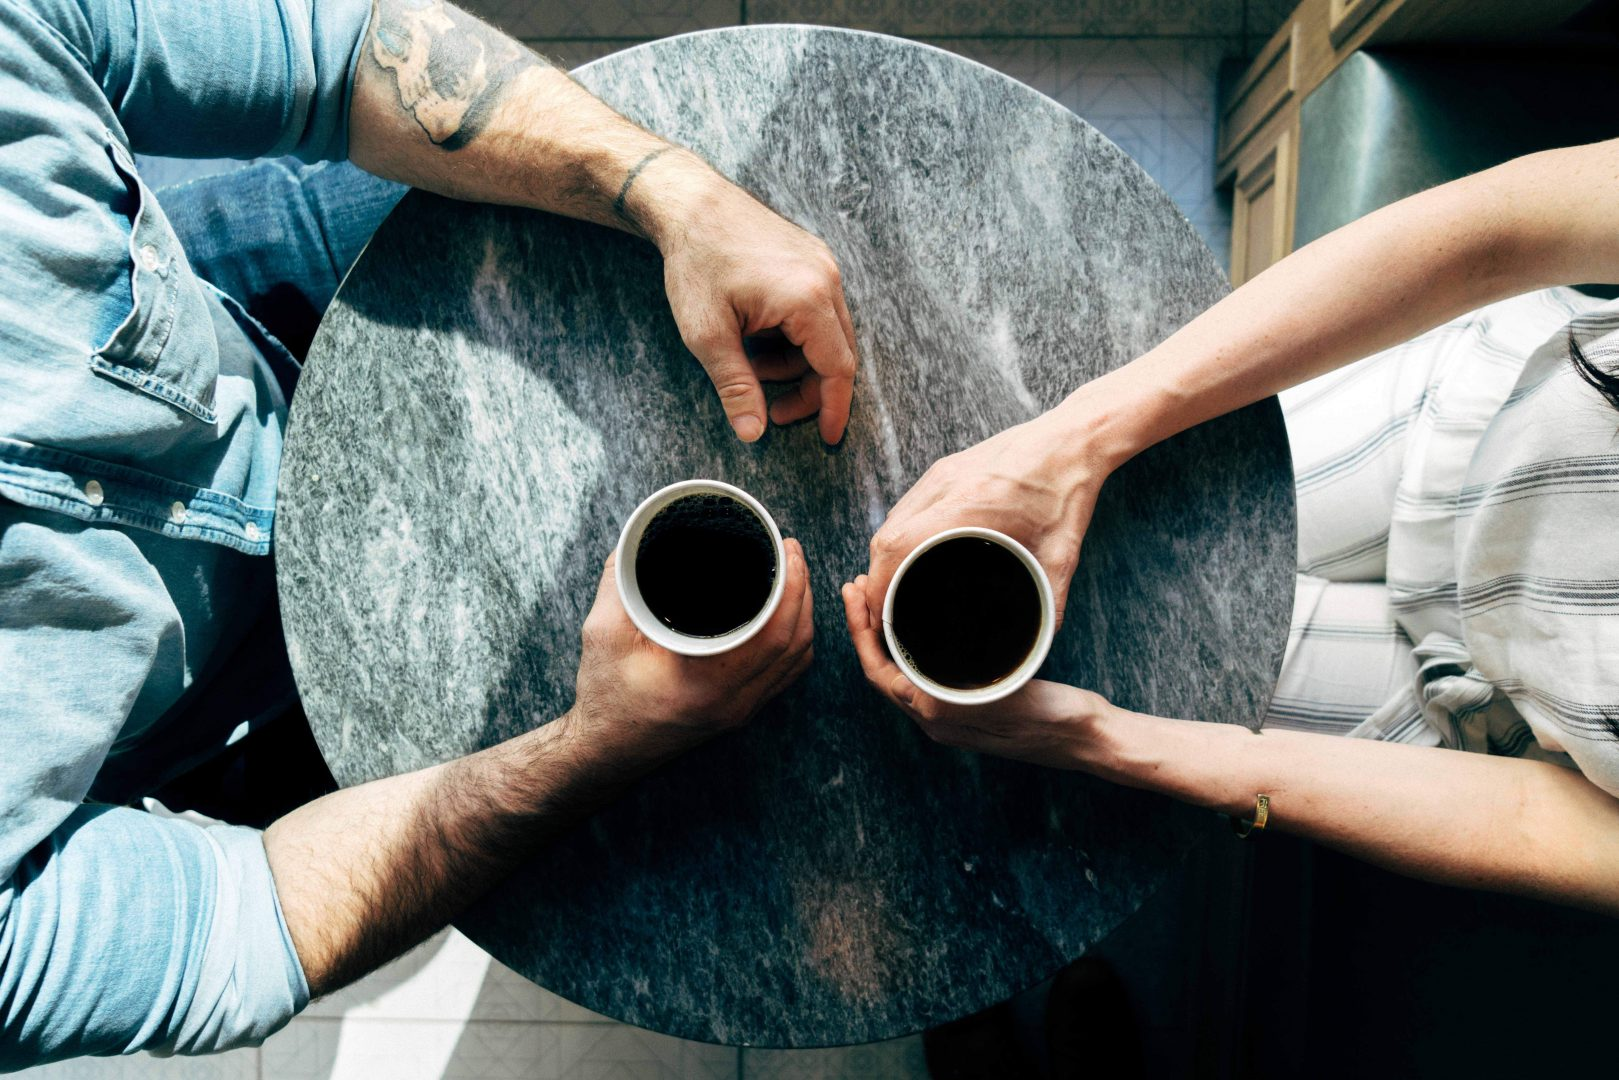 Ask a colleague to grab a good old cup of Joe together to make a great break for both of you.